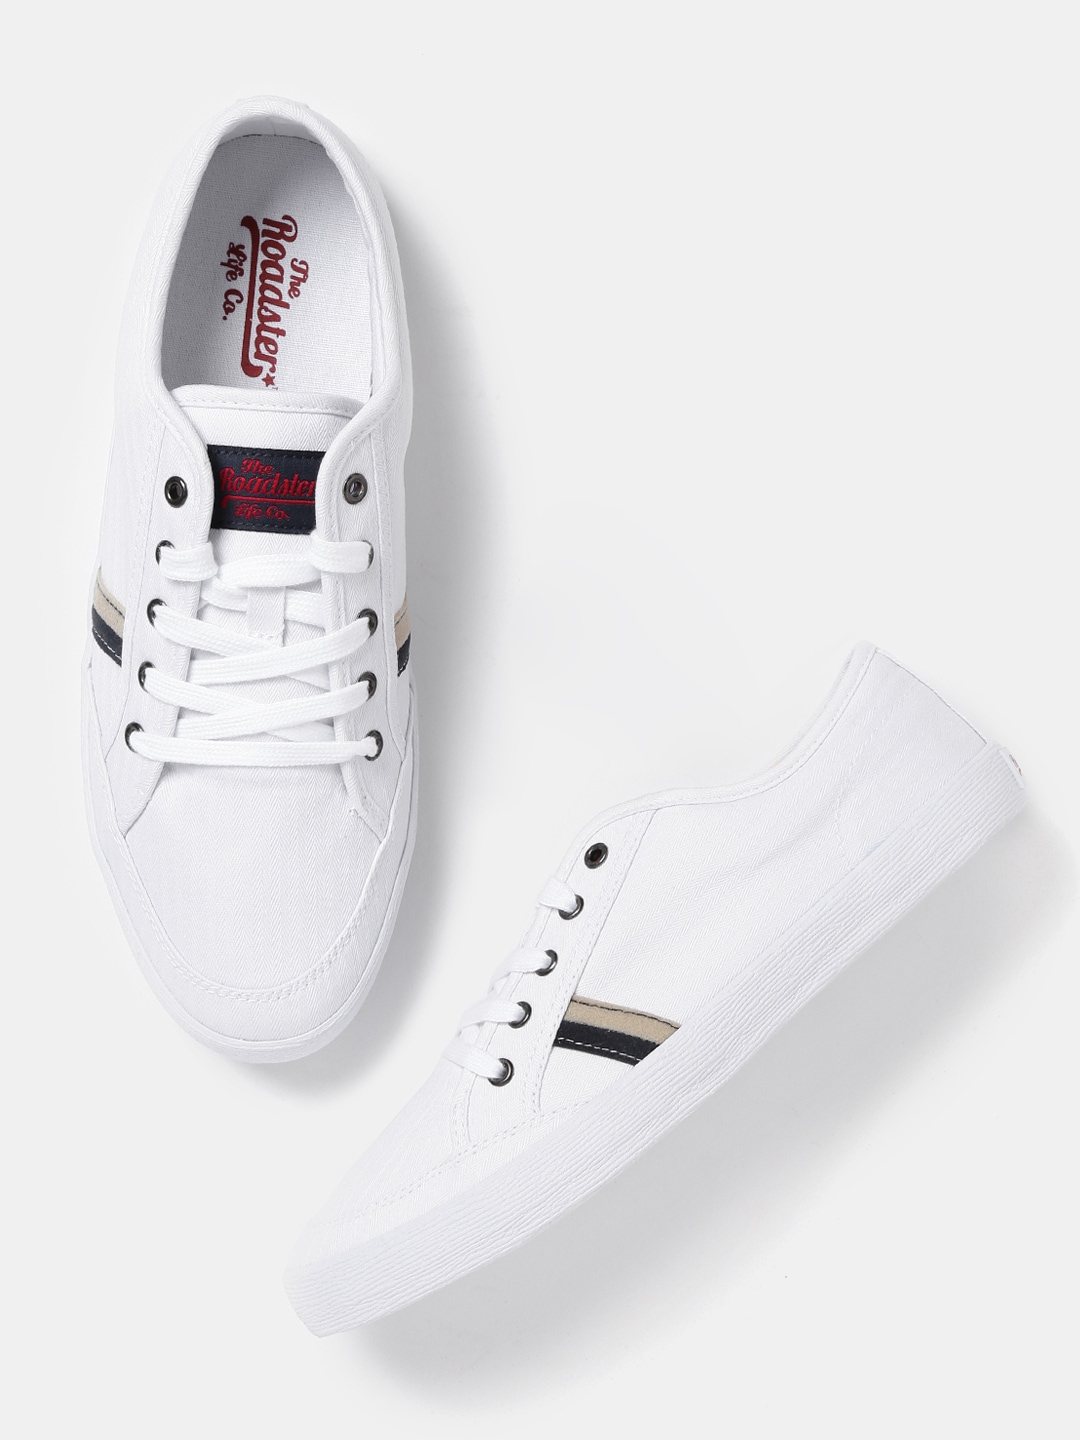 a382d6fadf4 Buy Roadster Brand Casual Shoes Online from Myntra